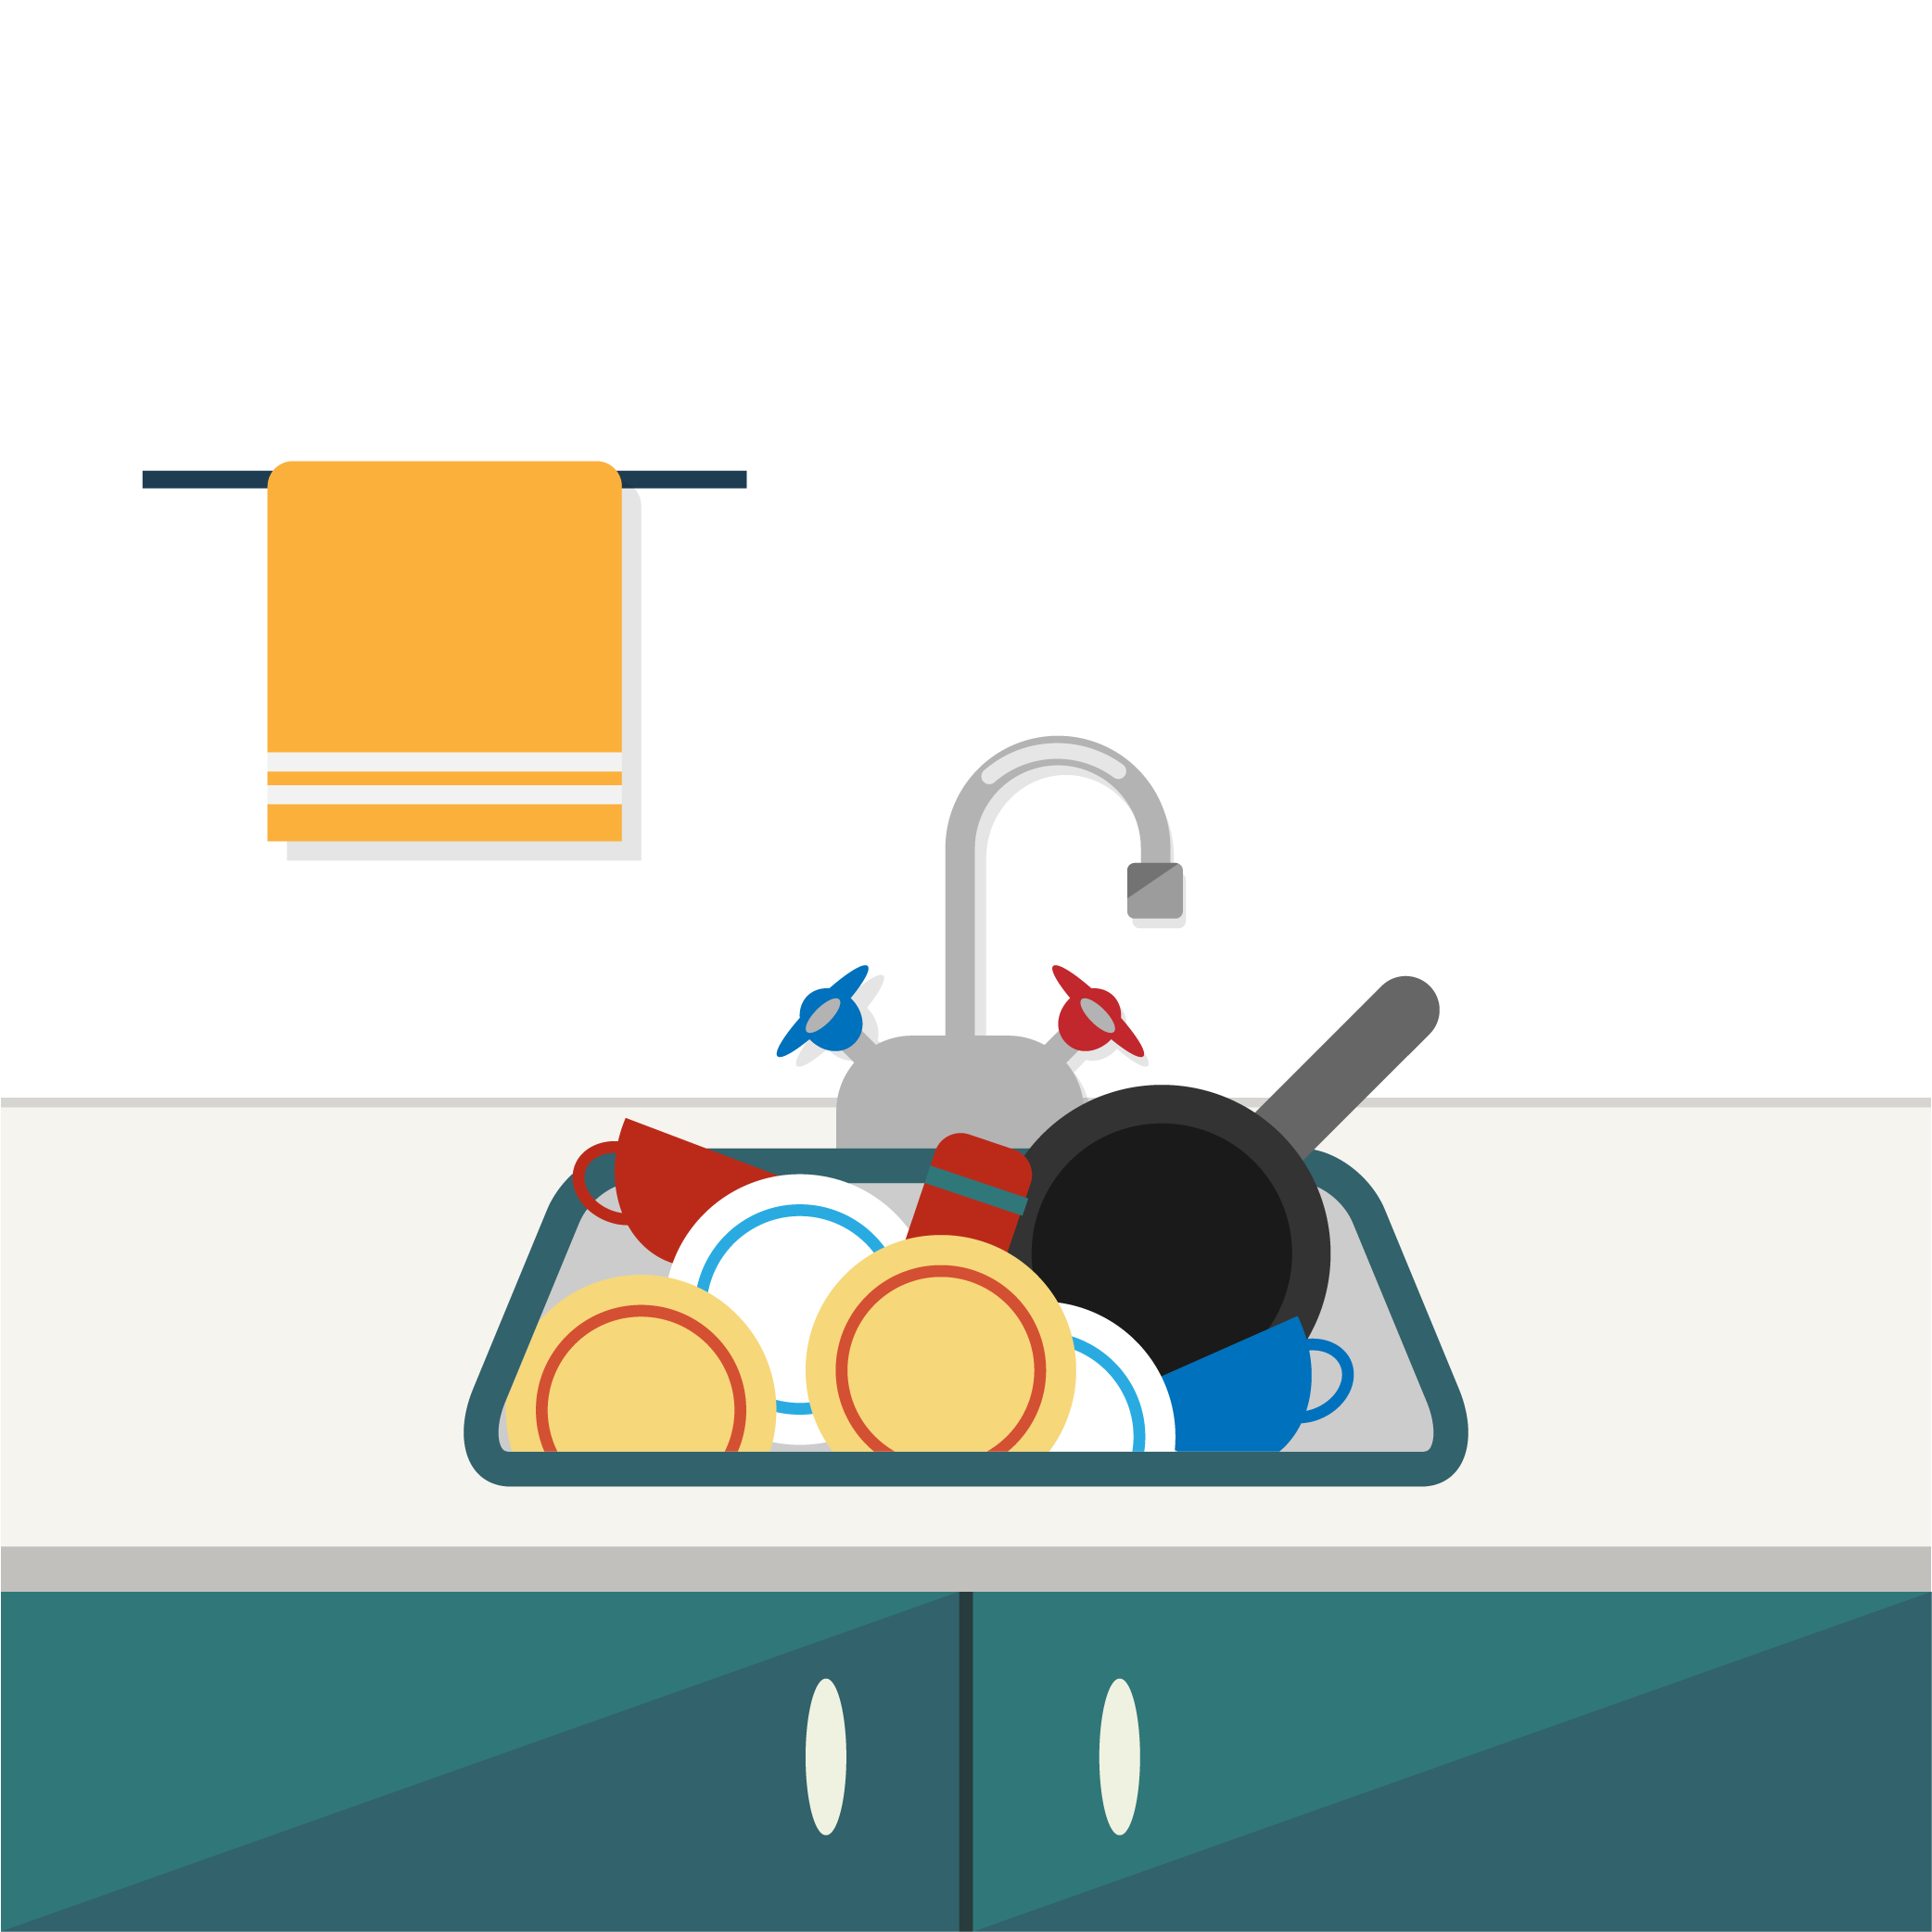 Dishes clipart sink drawing, Dishes sink drawing Transparent.